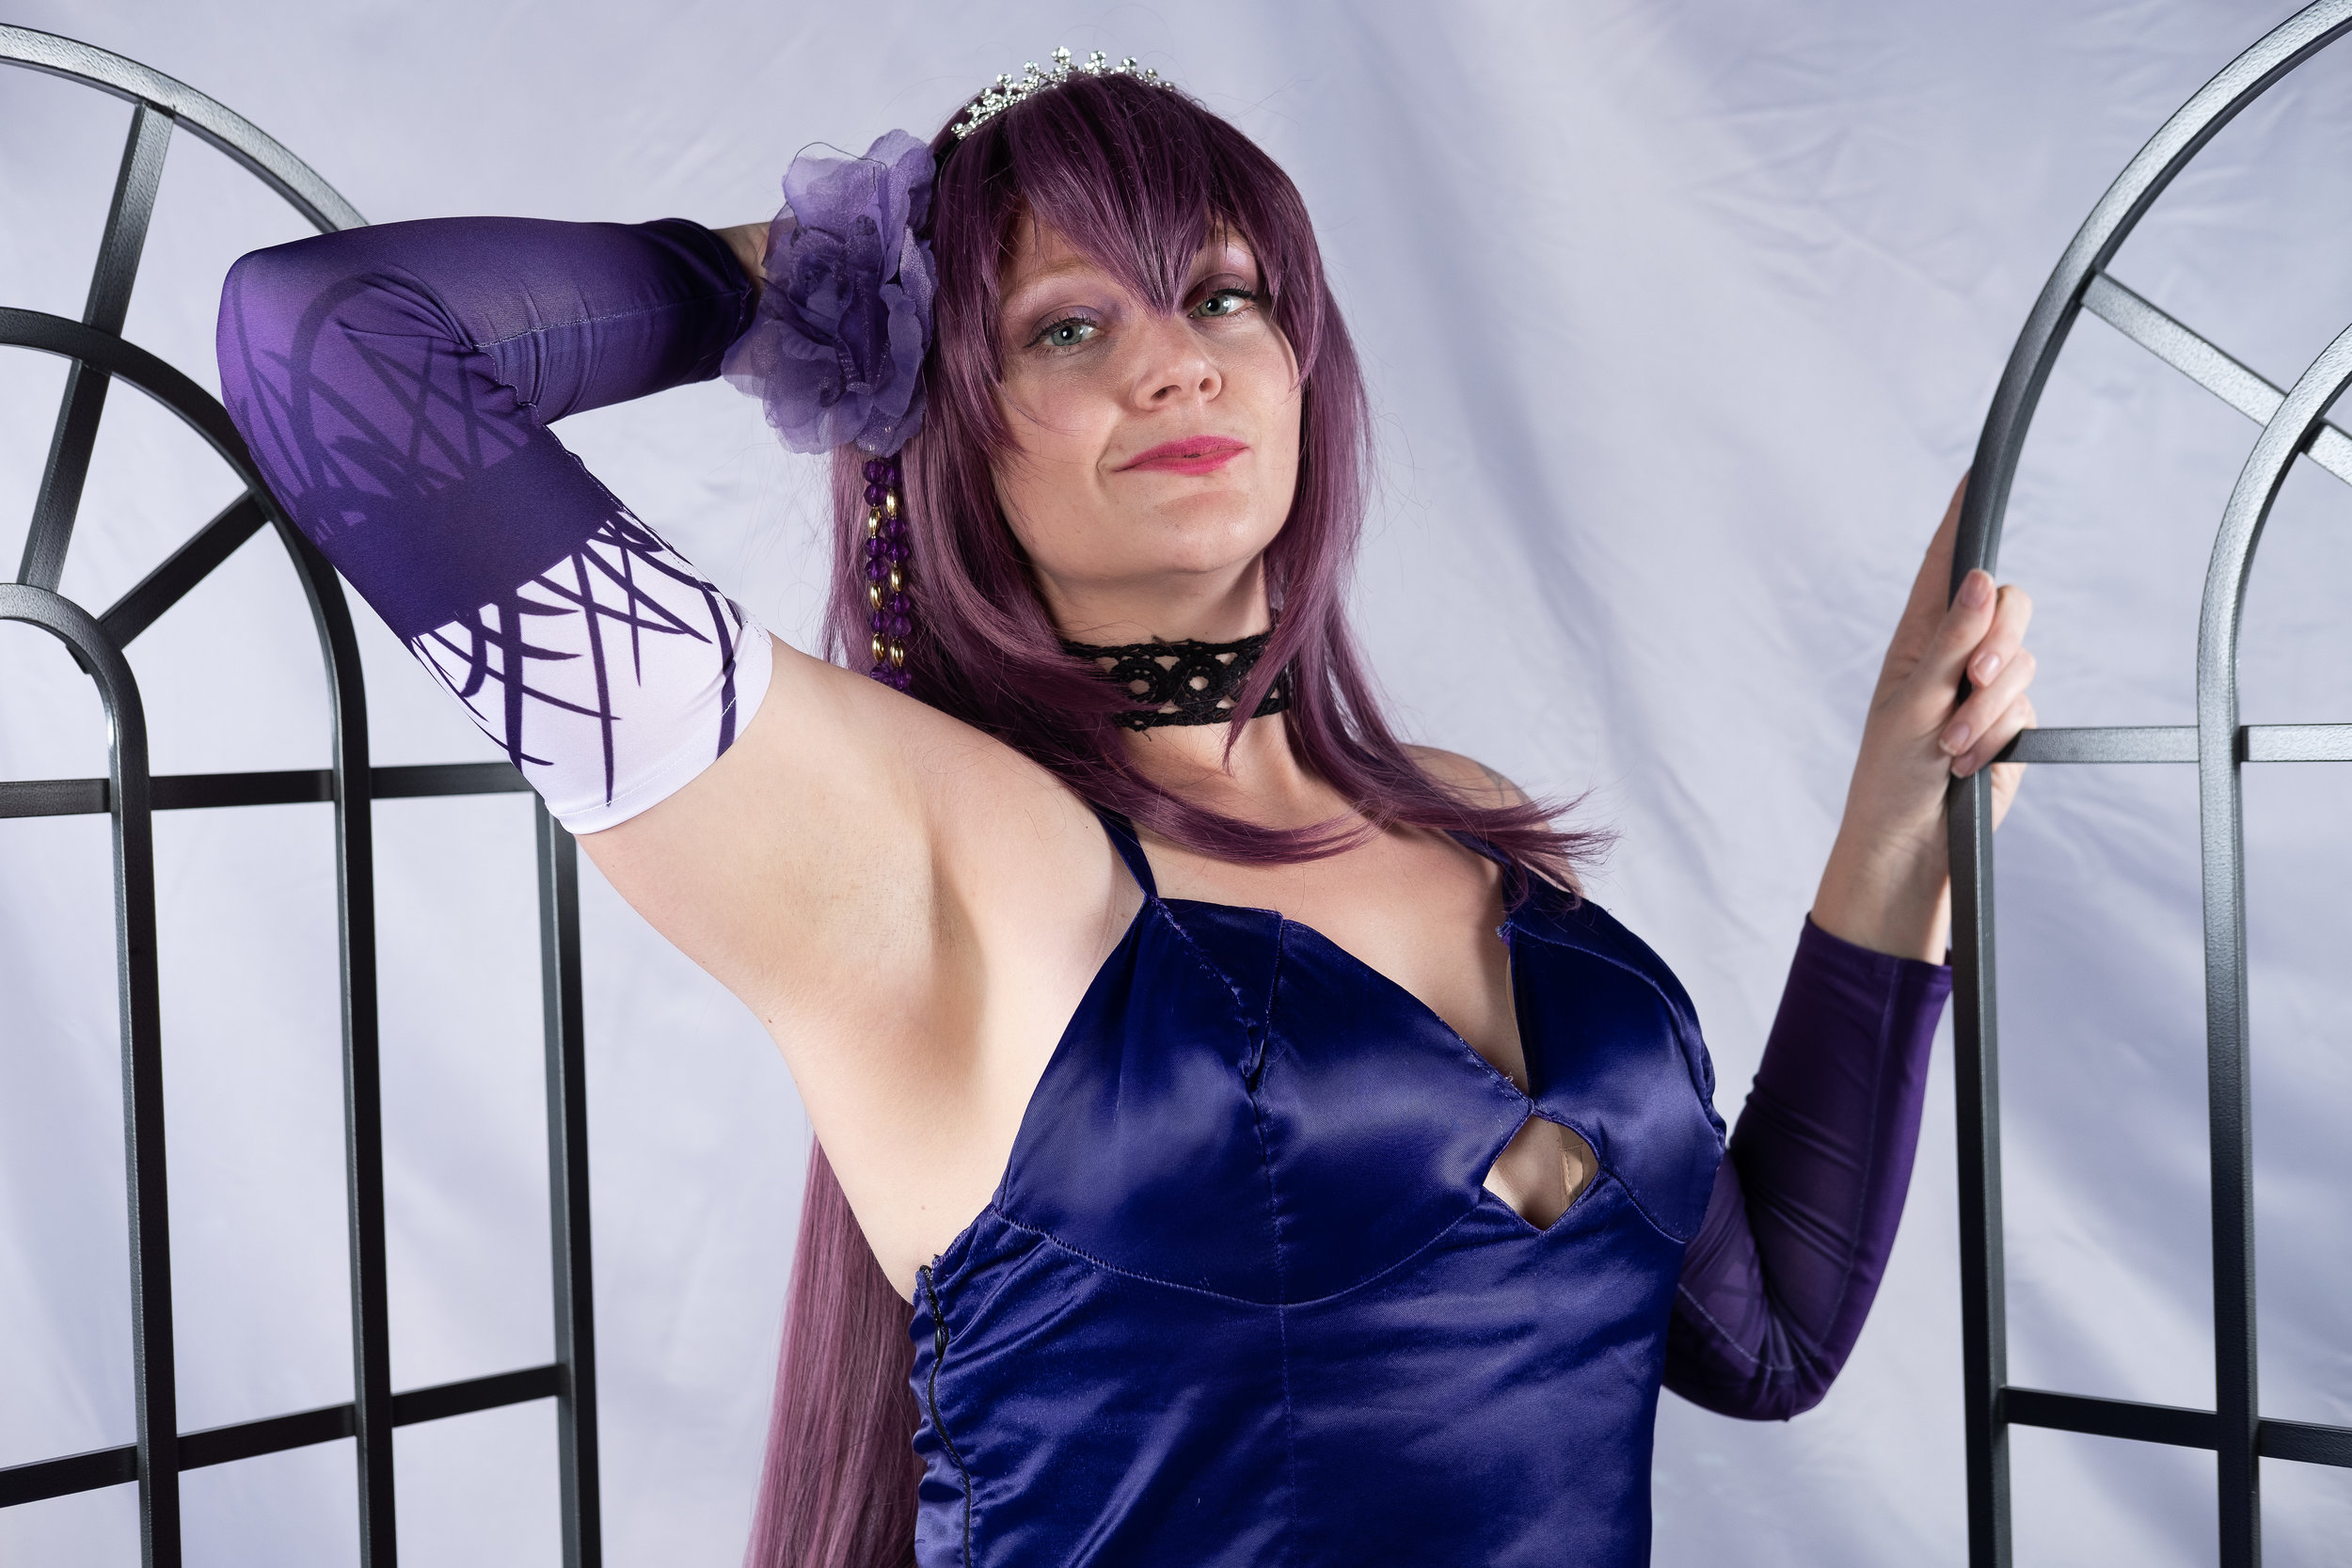 Allybelle Cosplay cosplaying as Scathach from Fate/Grand Order